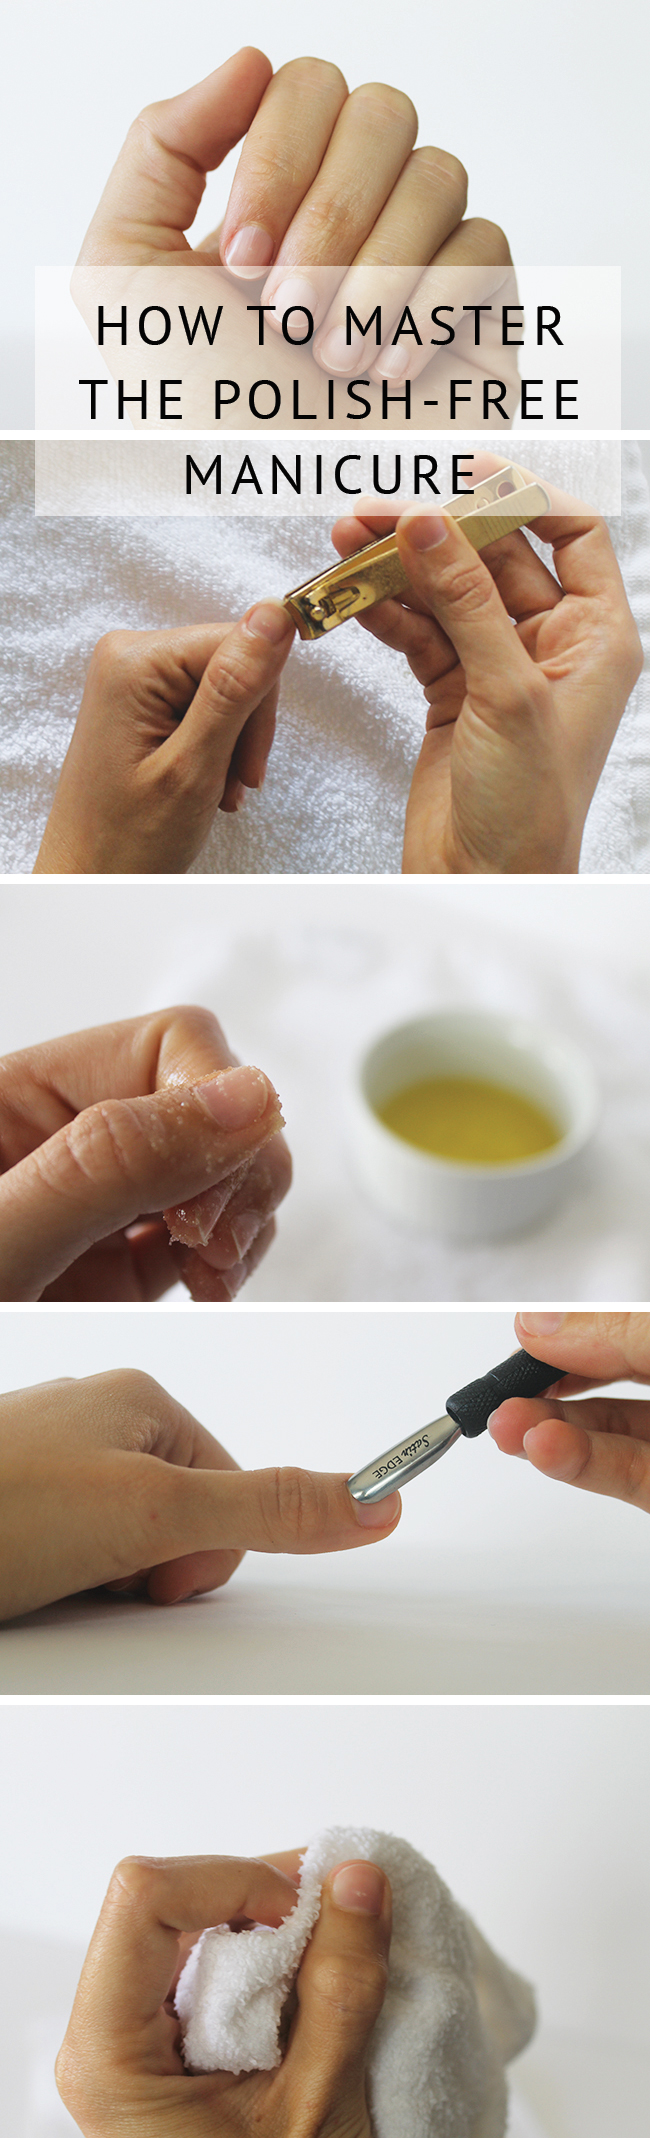 Learn how to perfect the polish-free manicure - all natural, toxin-free, beautiful nails every time